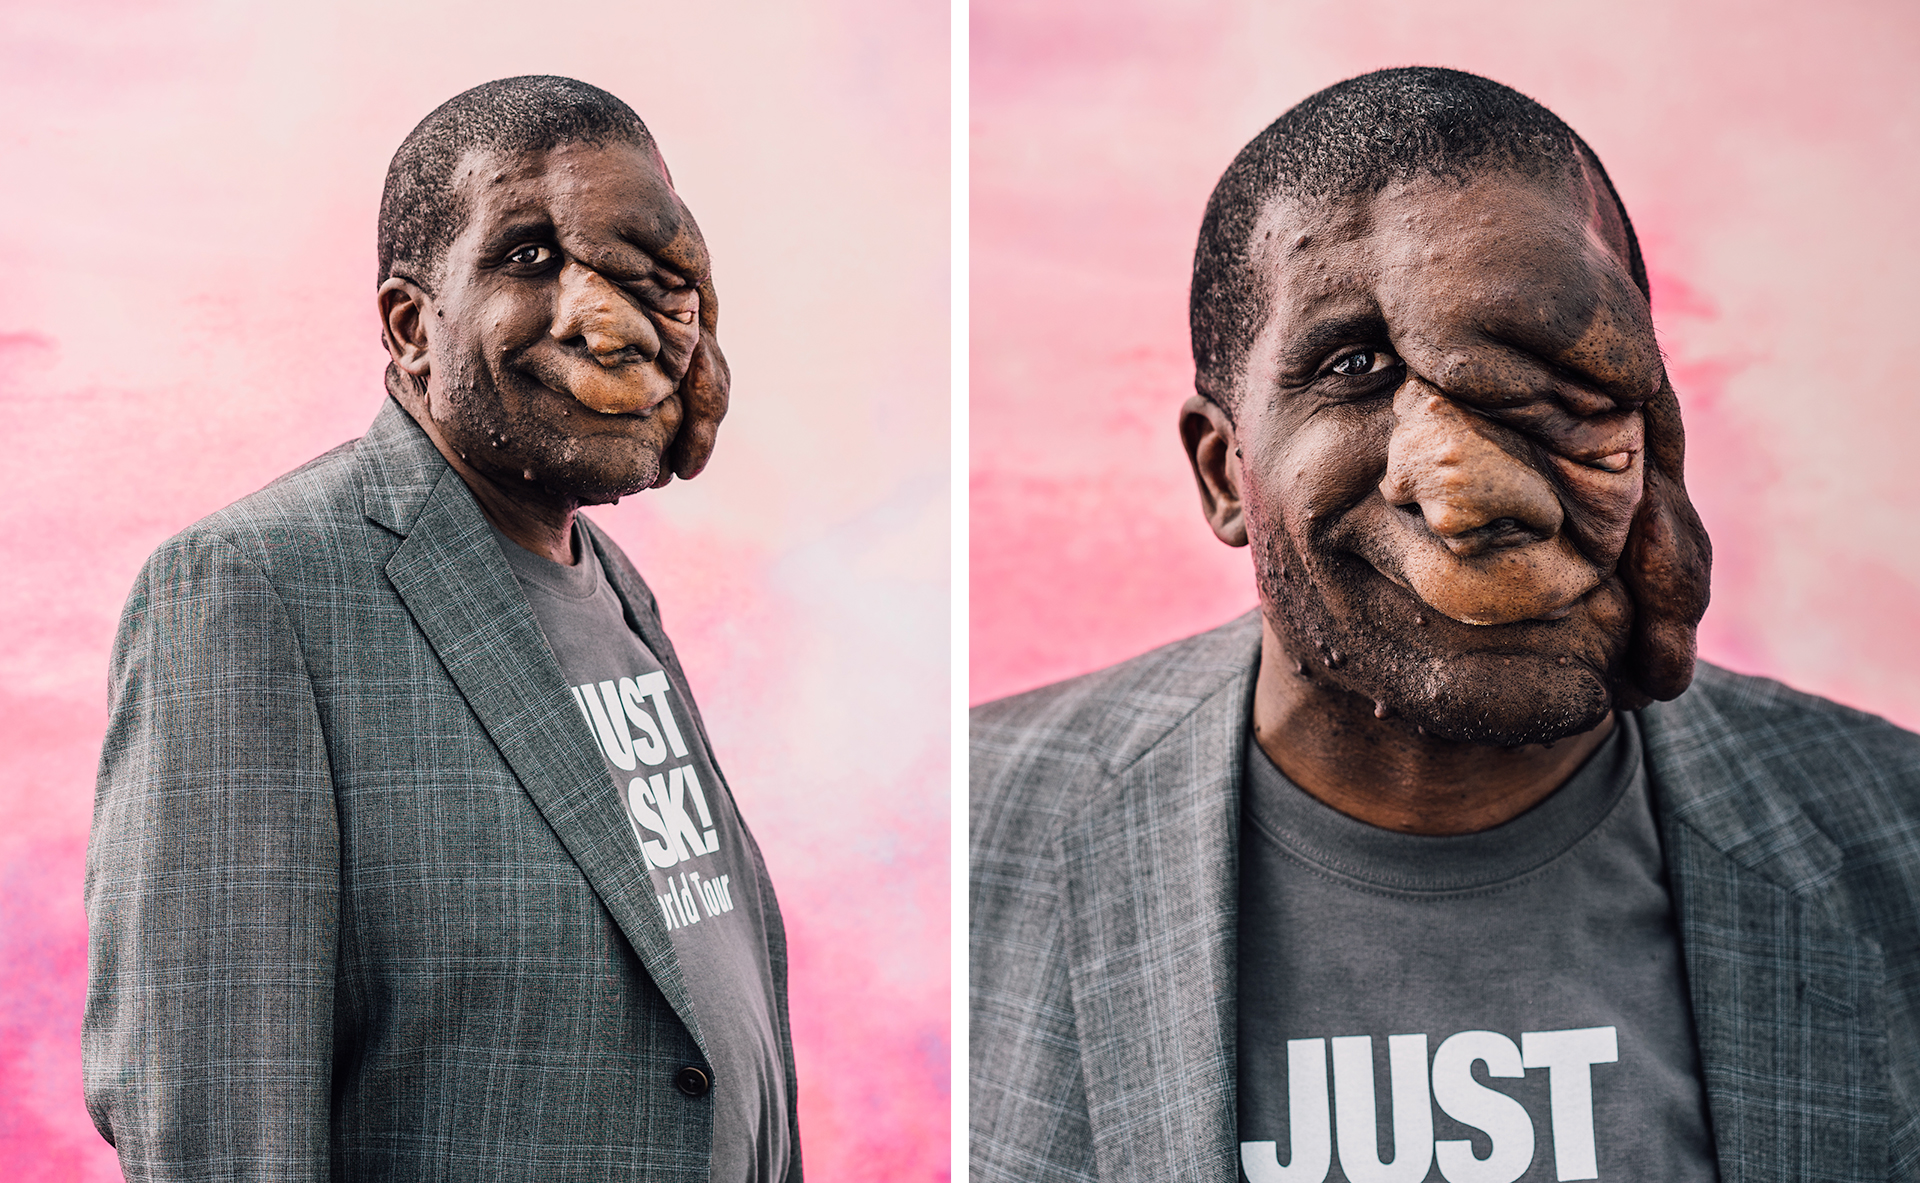 Photo project puts faces to Houston Equal Rights Ordinance - Houston ...